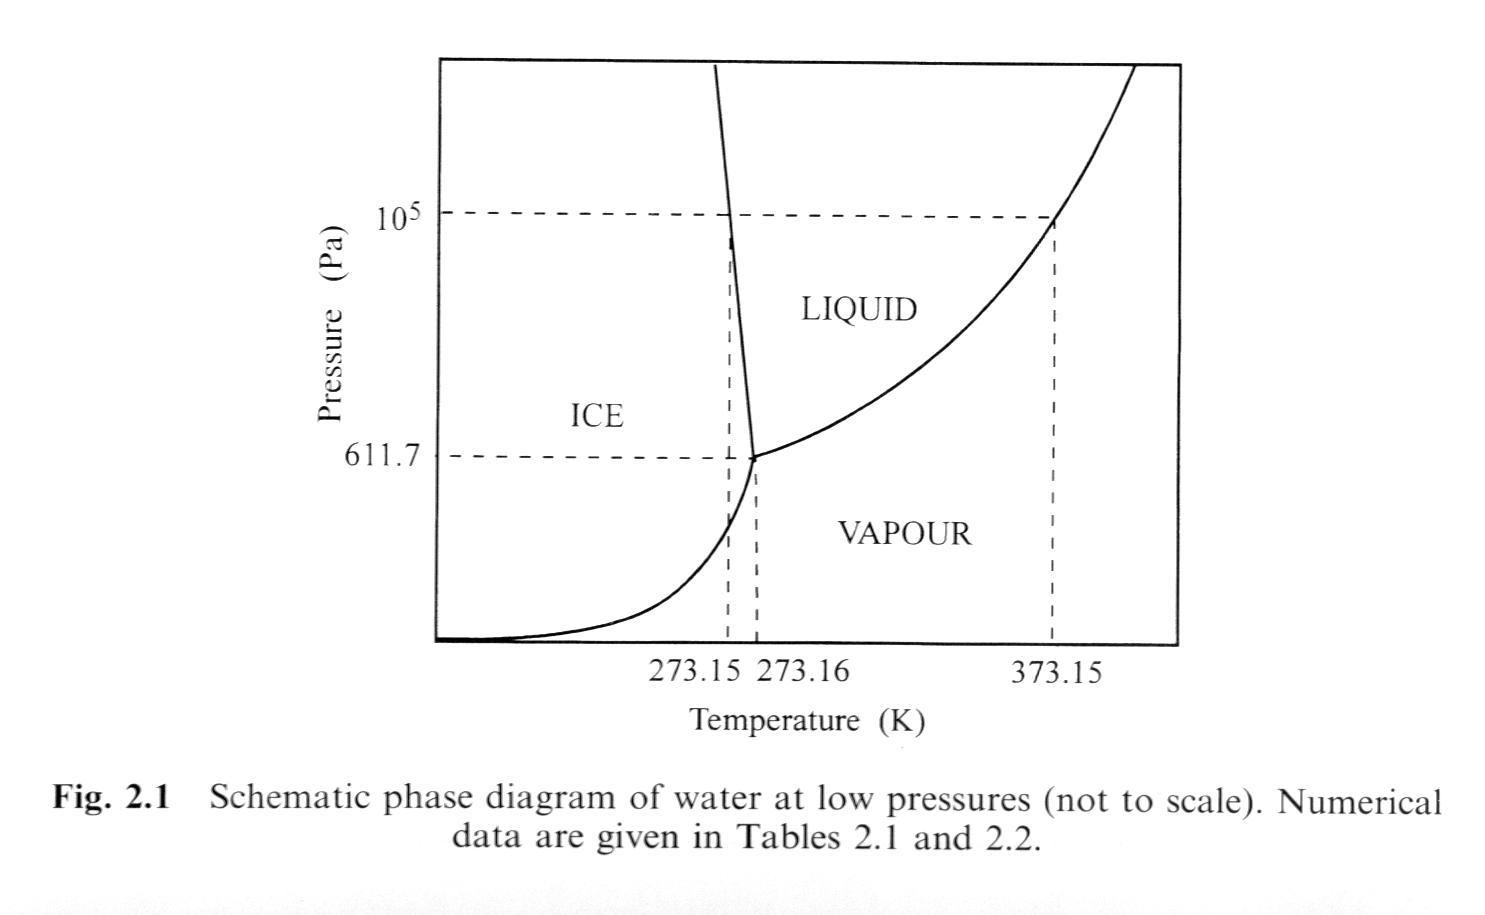 Course notes for glaciology geol 48885888 pressure temperature relationships for pure water phase diagram ice1h more detail pooptronica